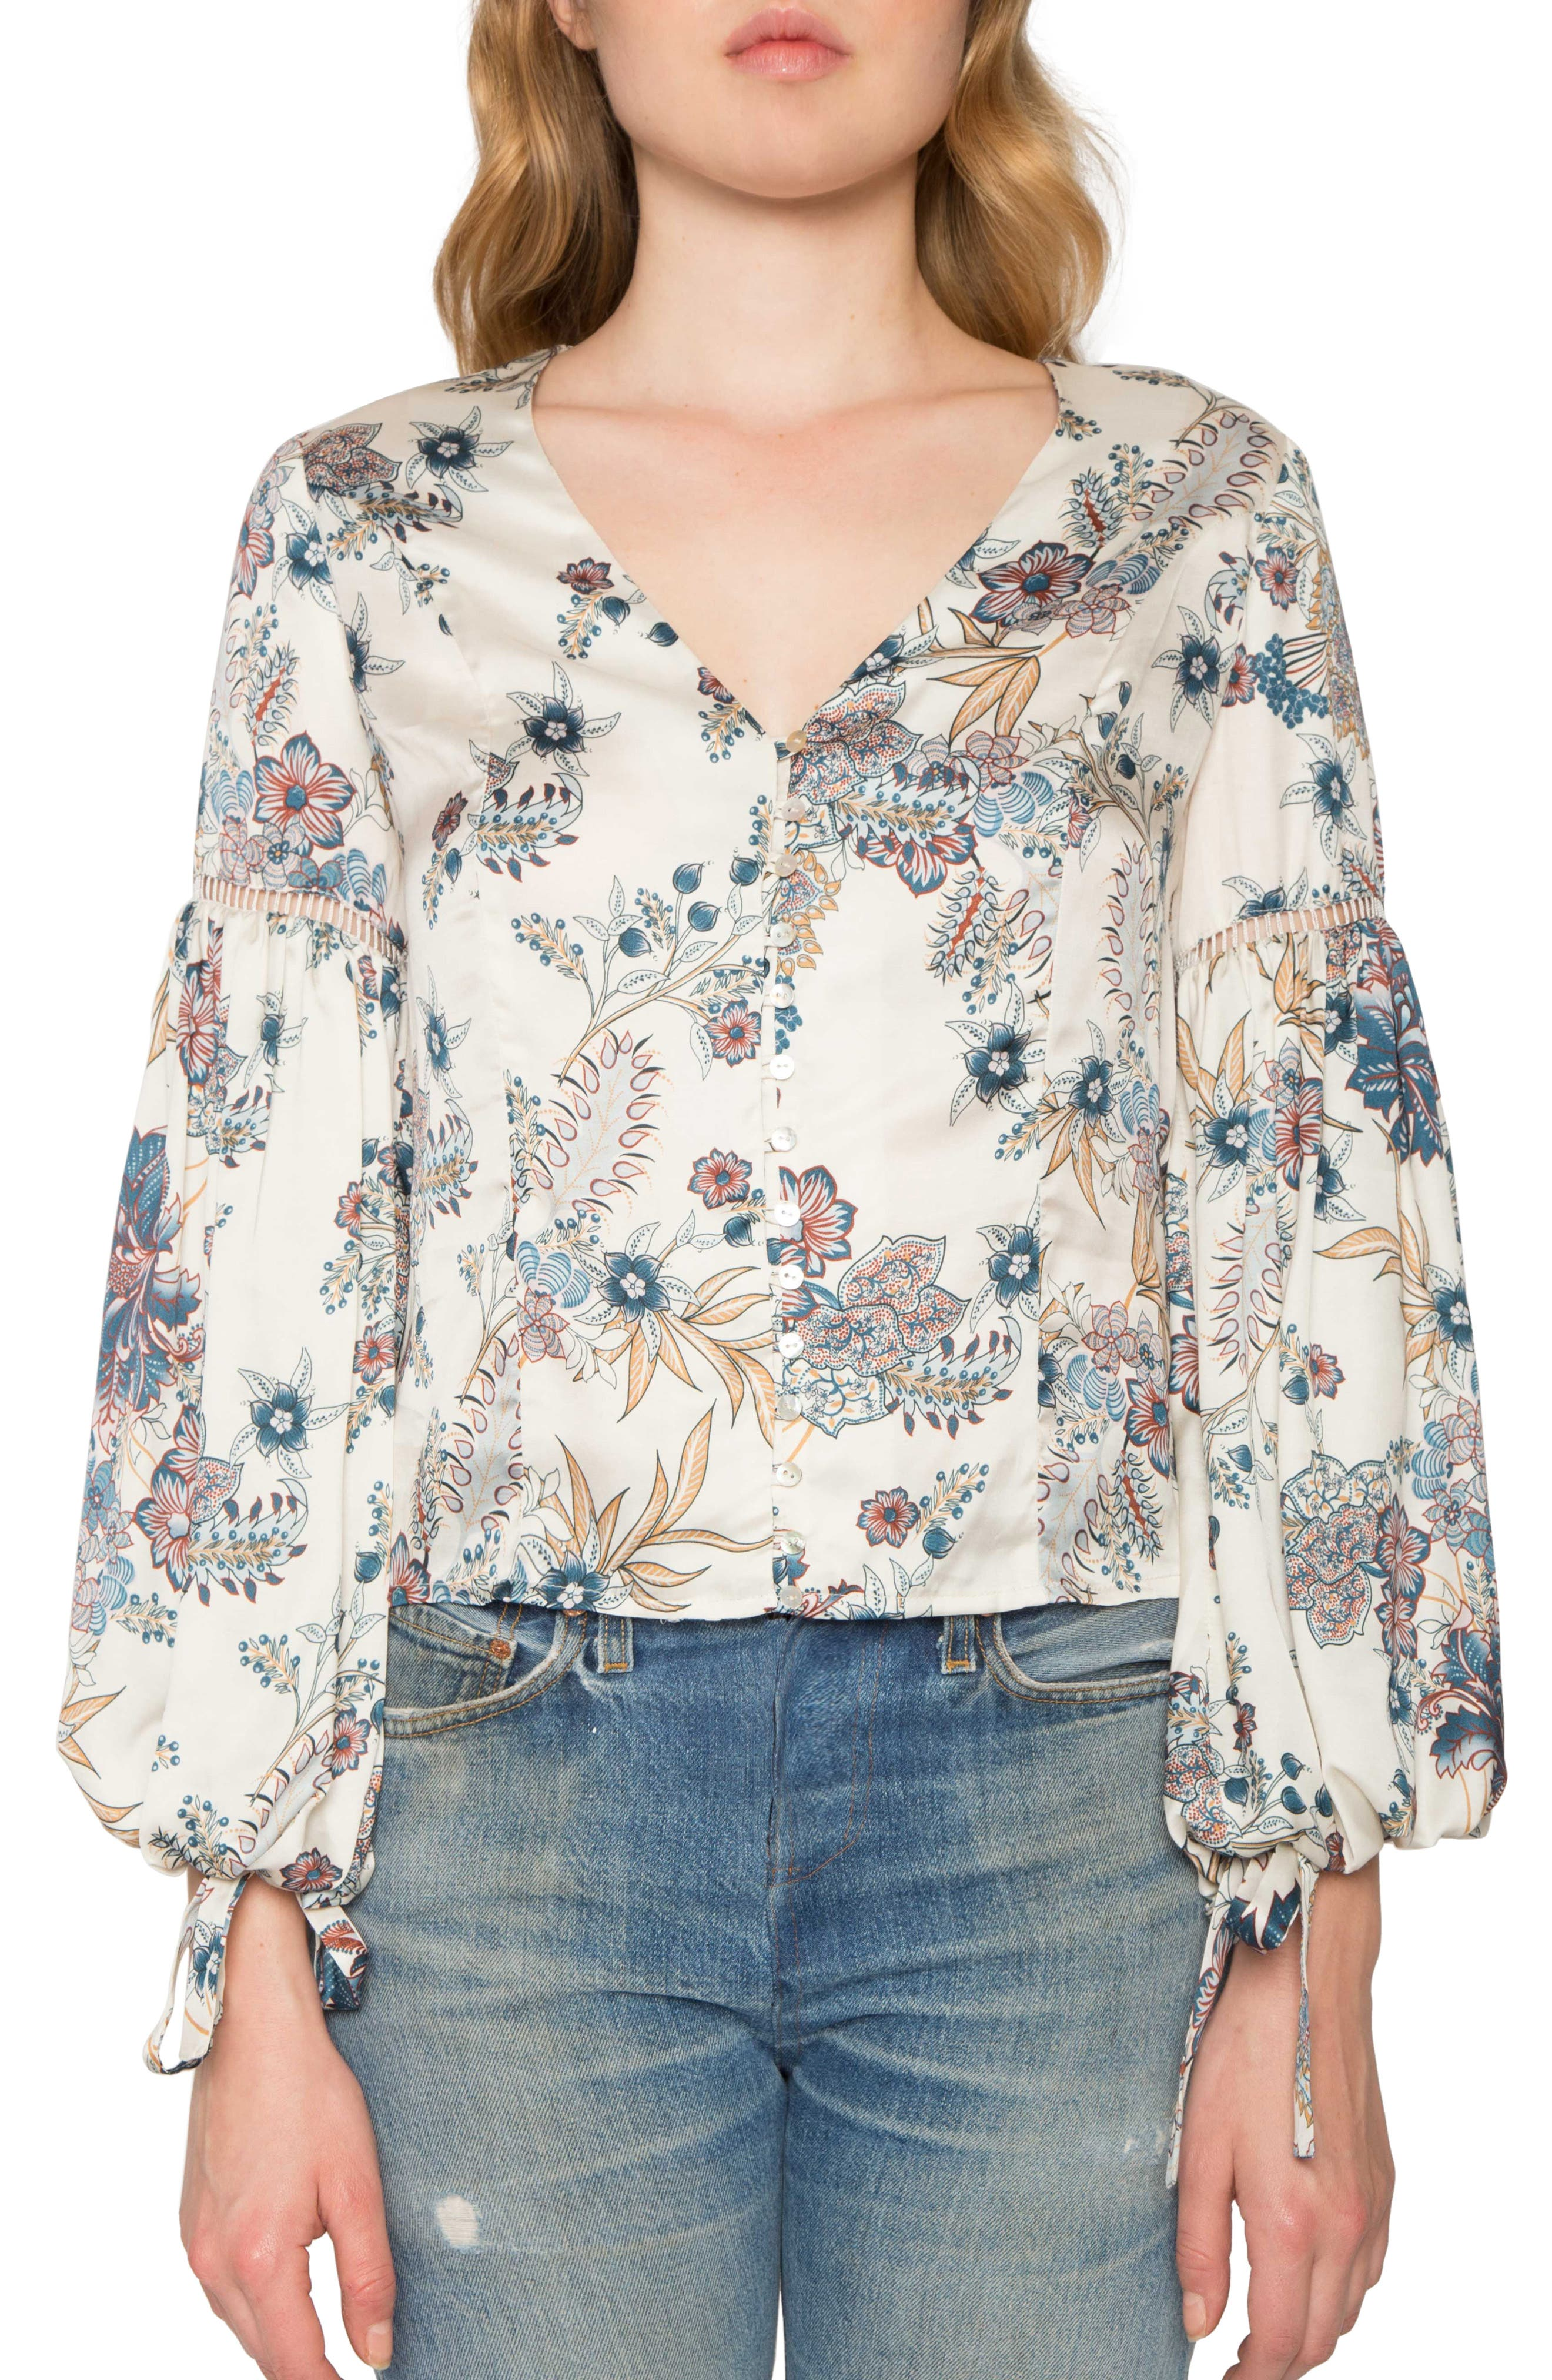 Main Image - Willow & Clay Print Tie Cuff Blouse